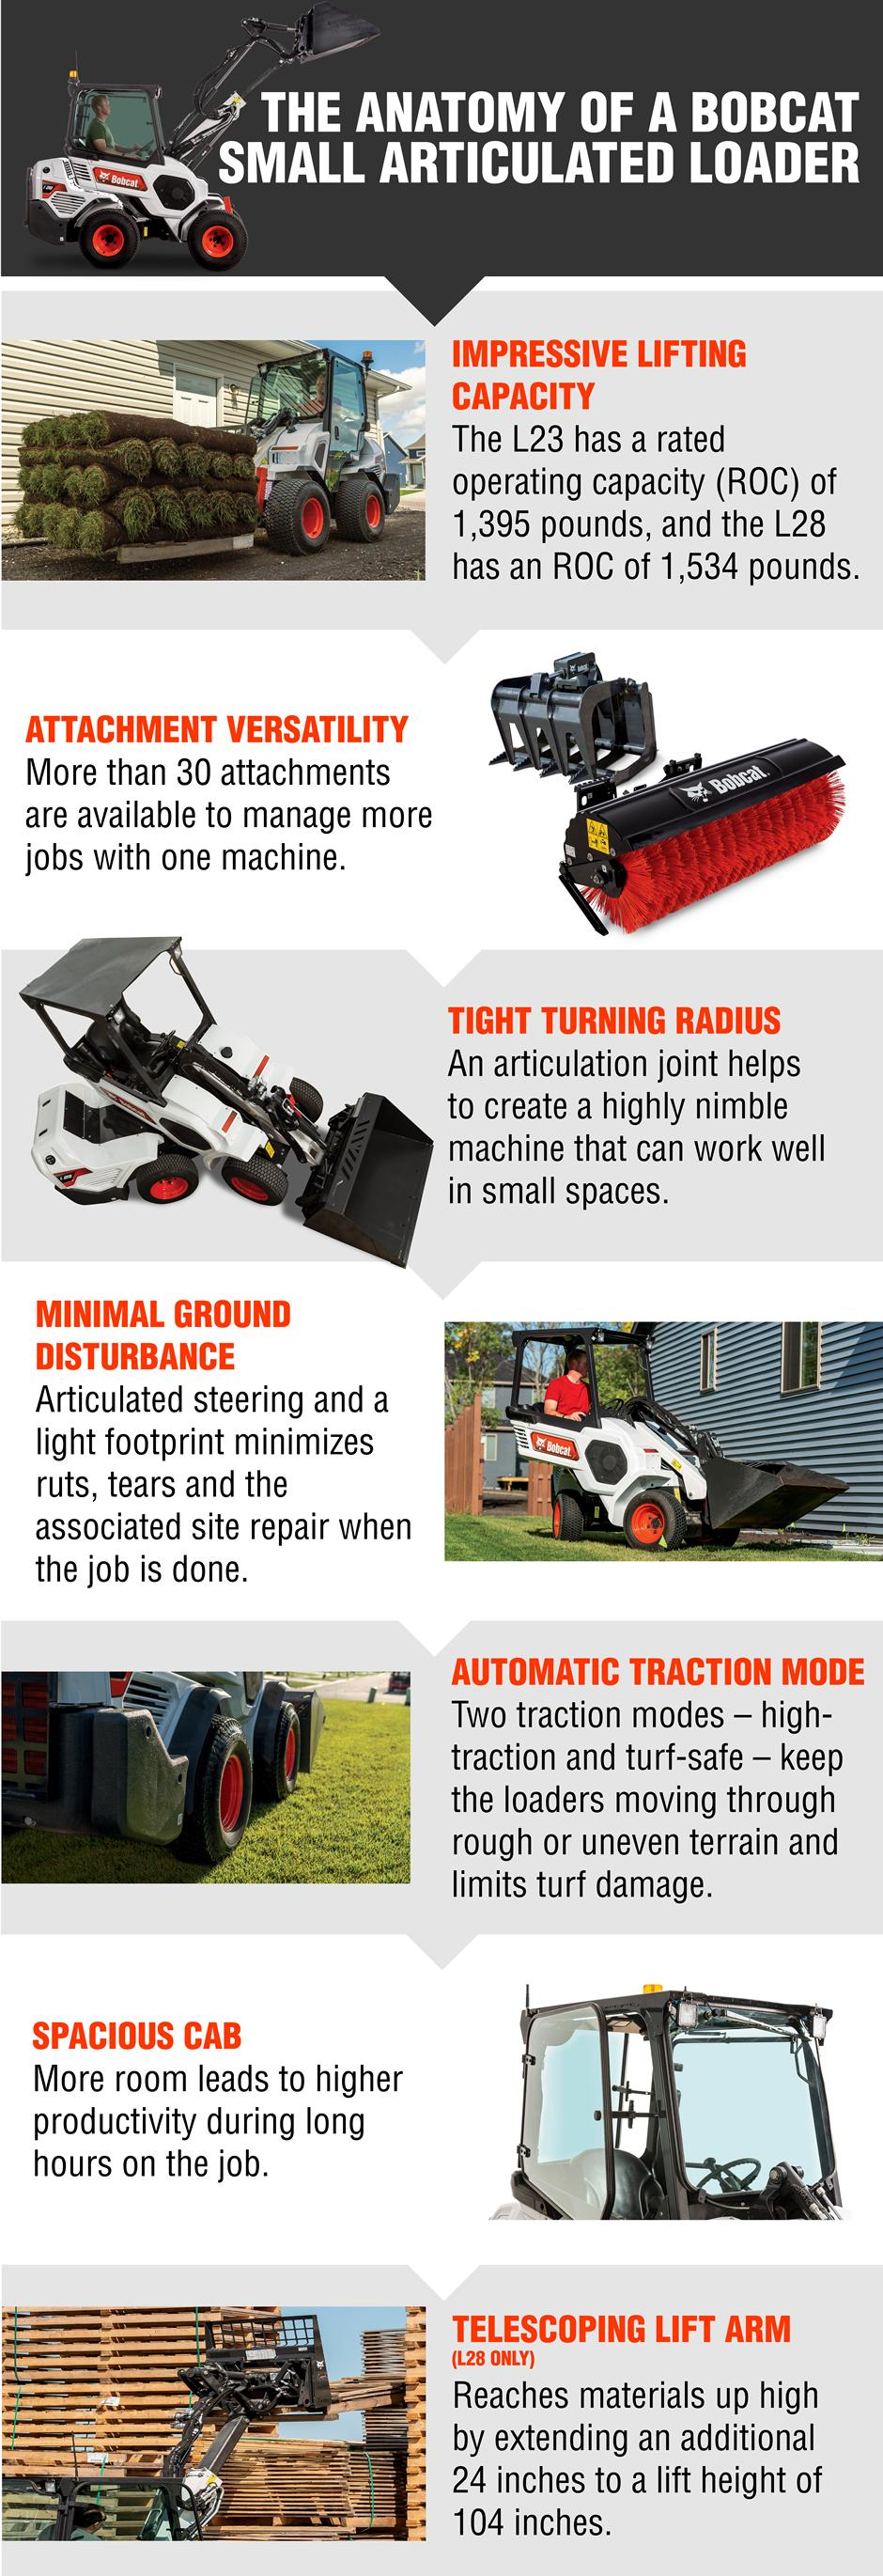 Infographic Of A Bobcat Small Articulated Loader